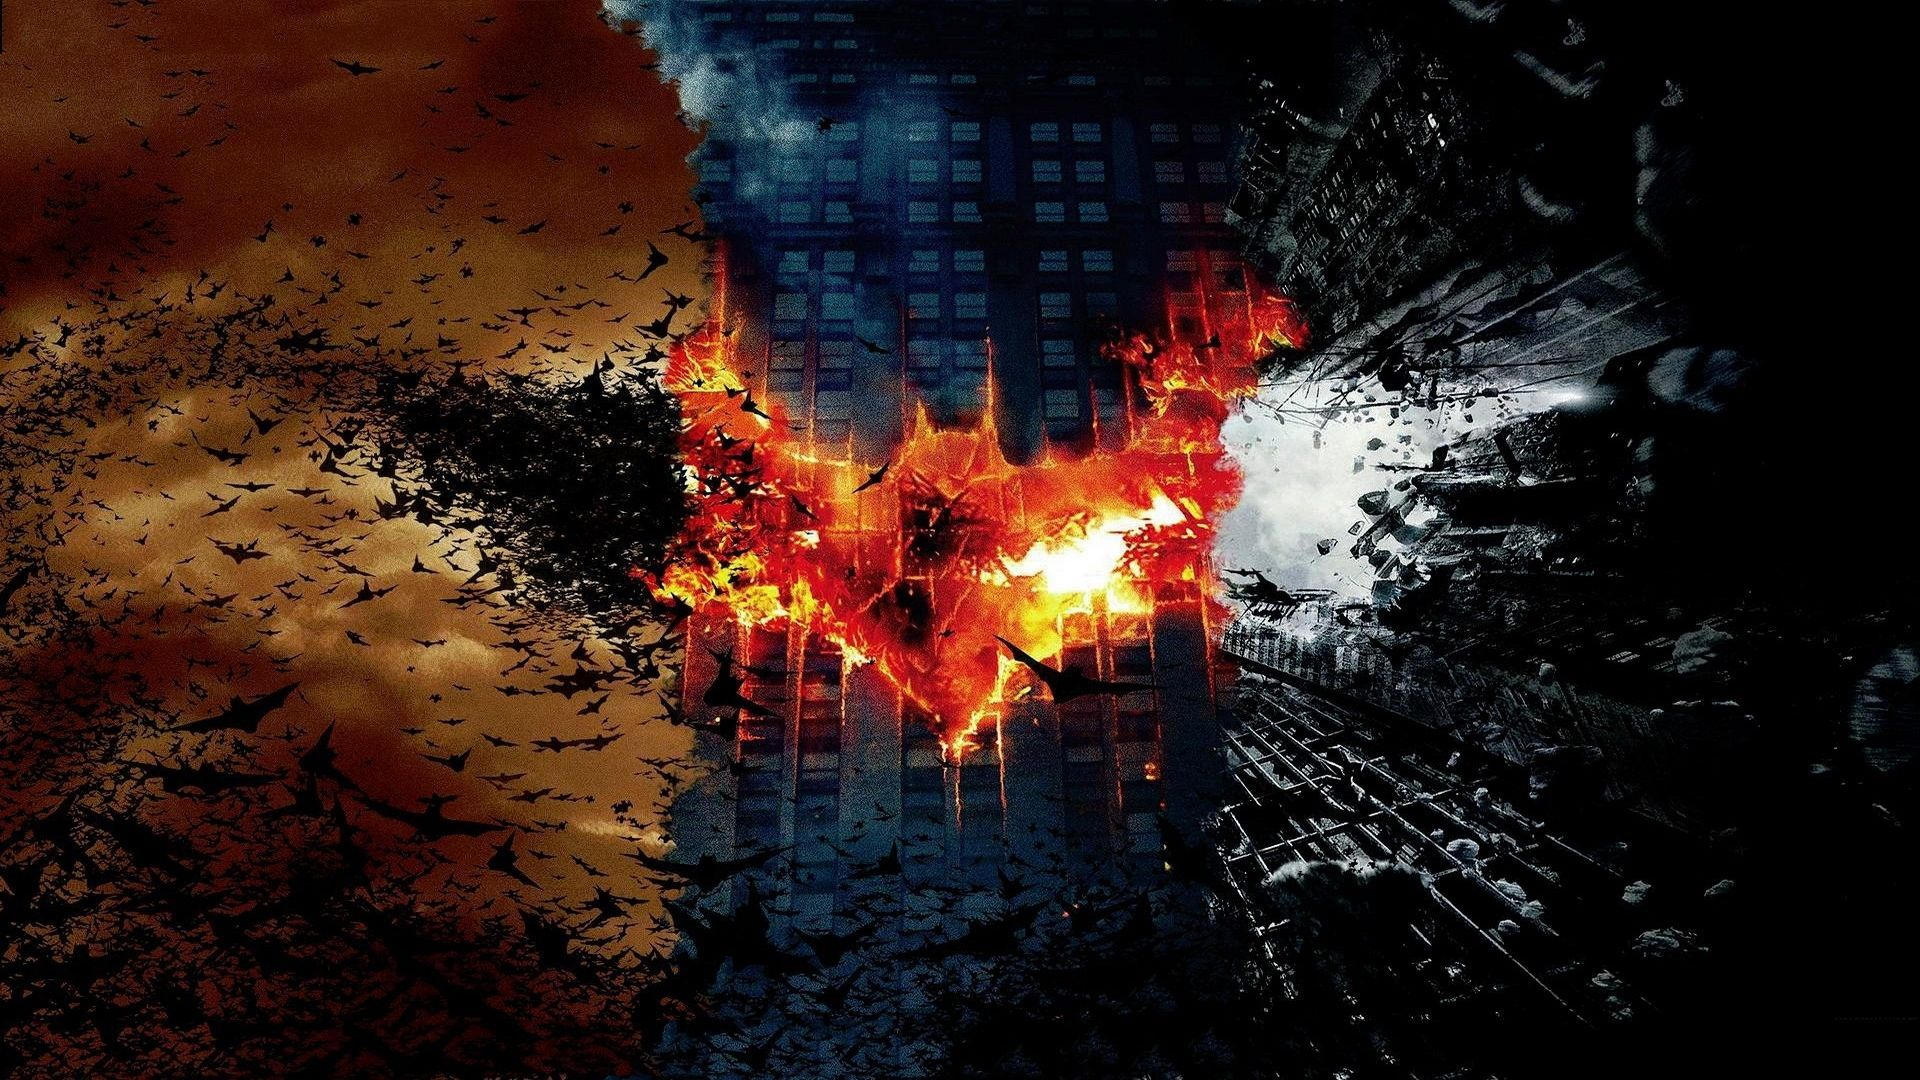 The Dark Knight Rises Wallpaper 1080p Batman Wallpaper